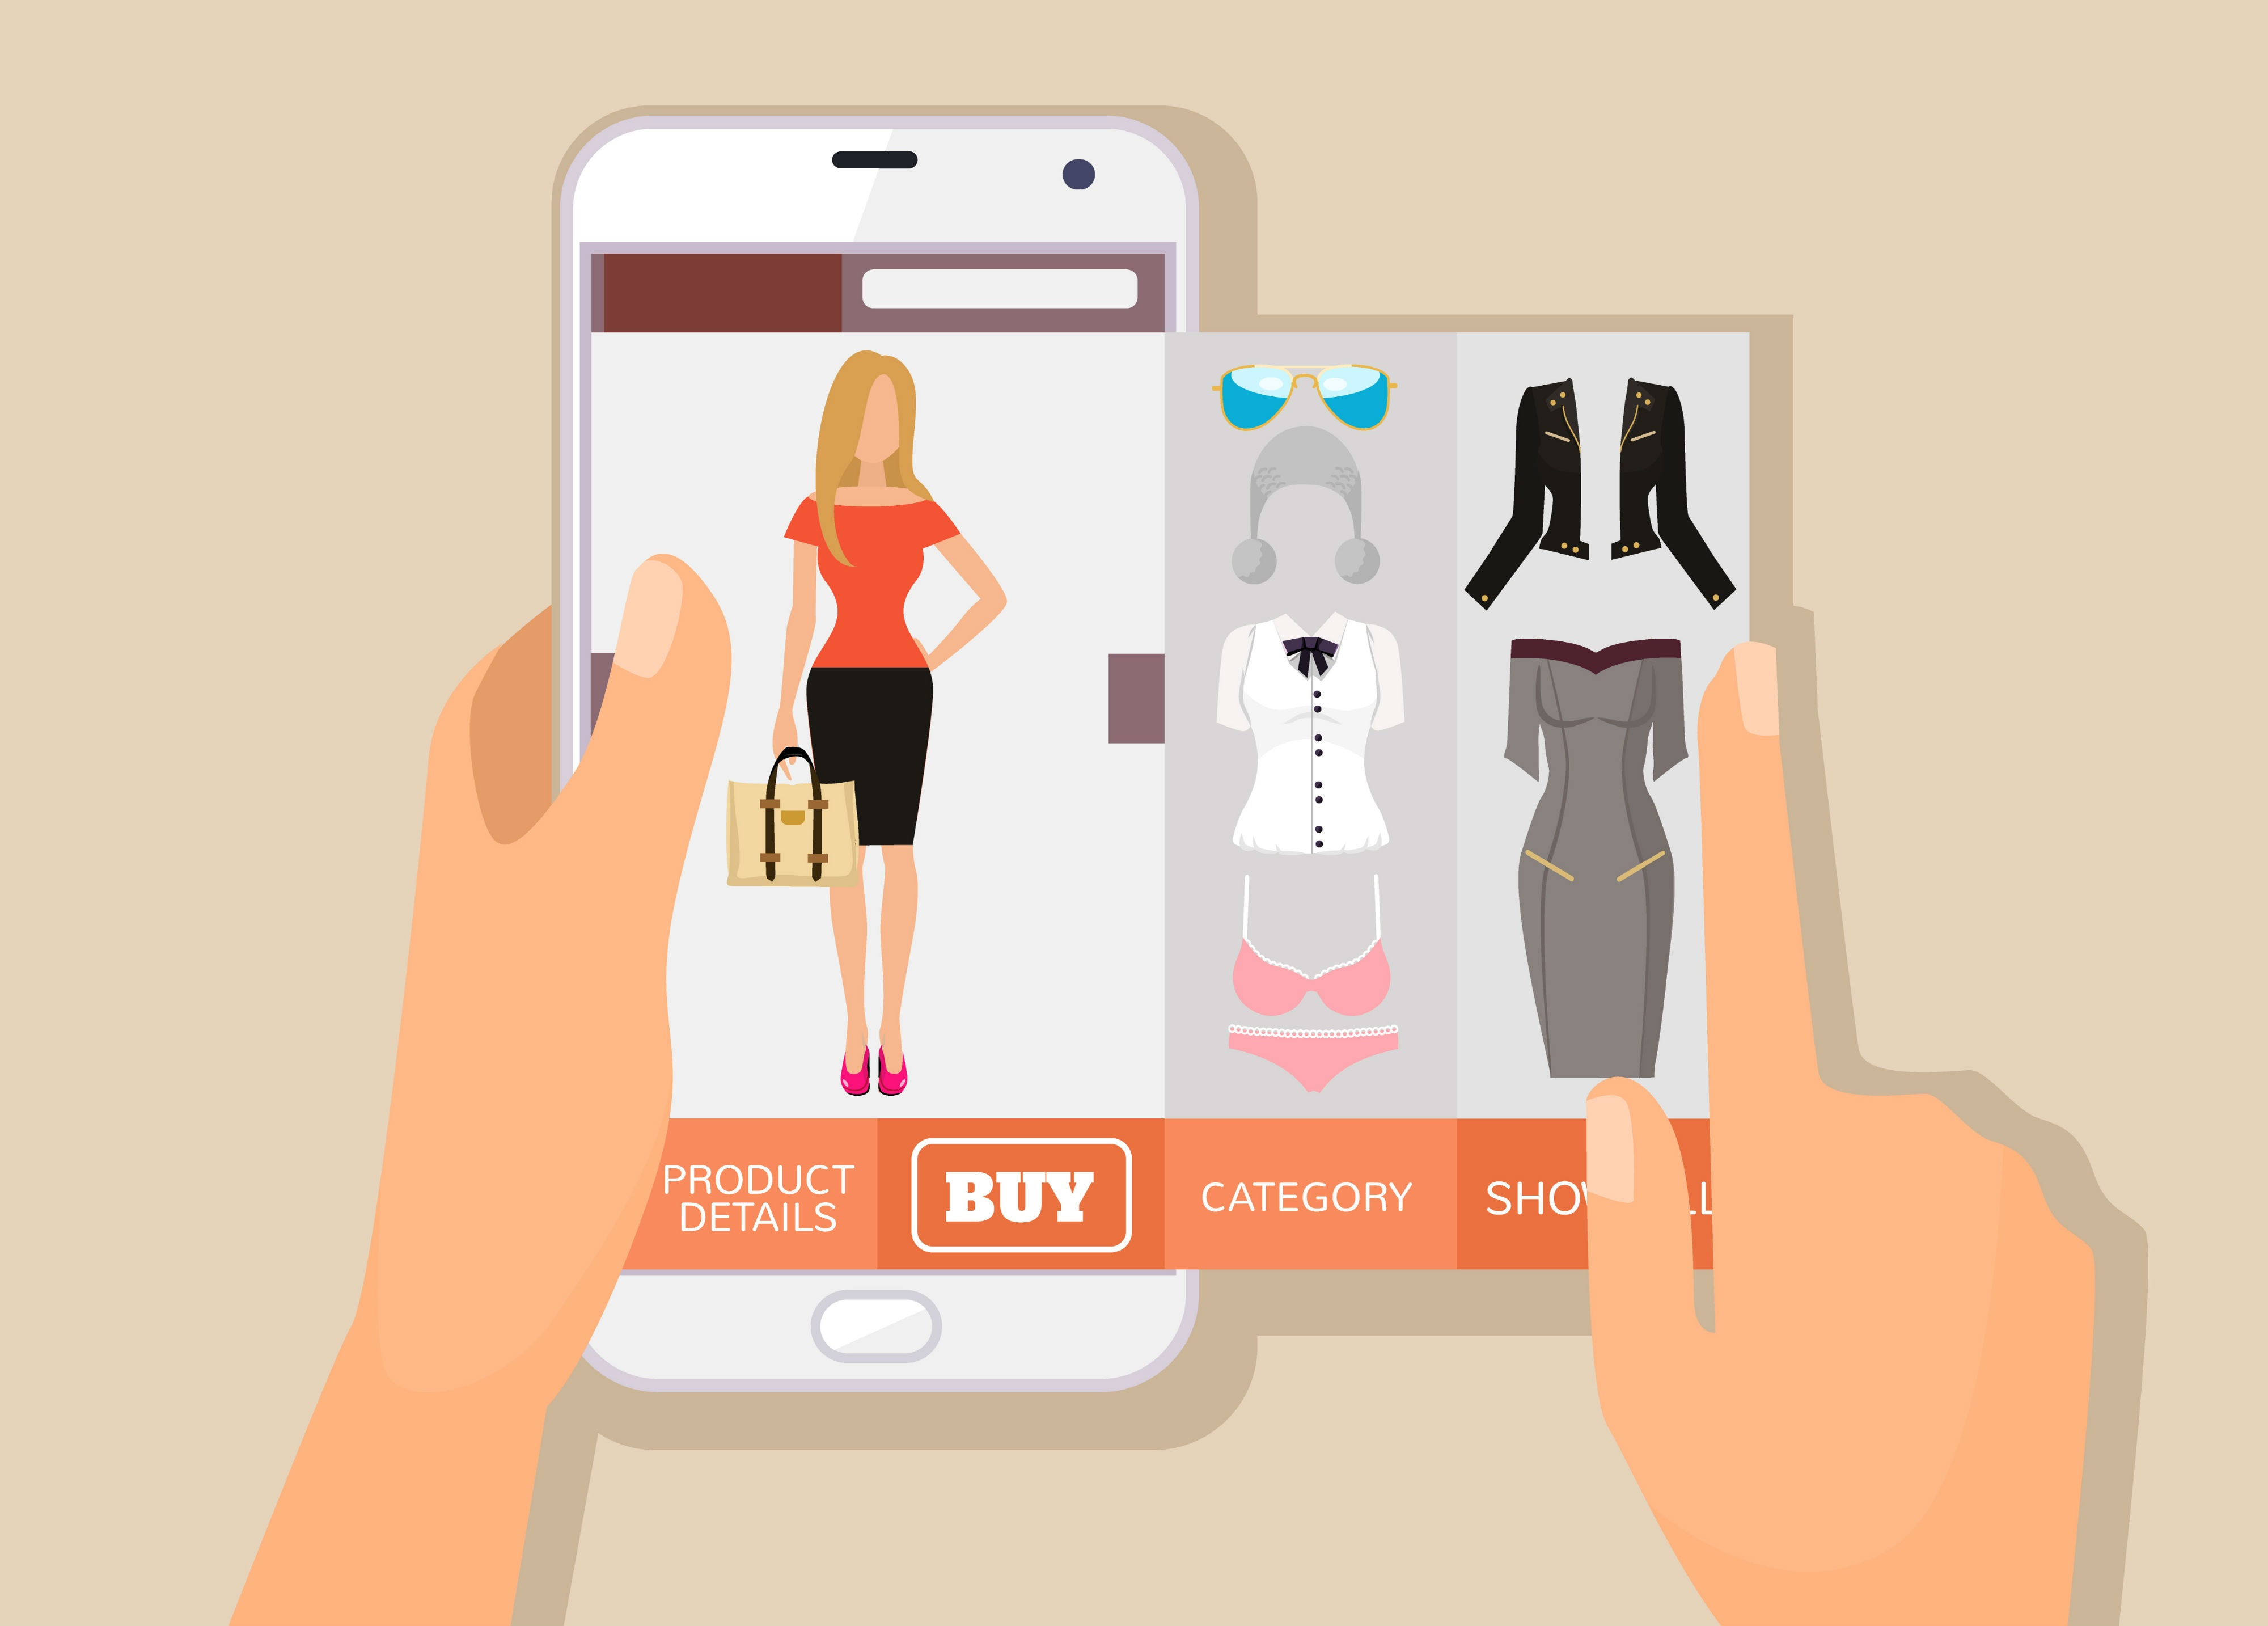 Mobile marketing in ecommerce